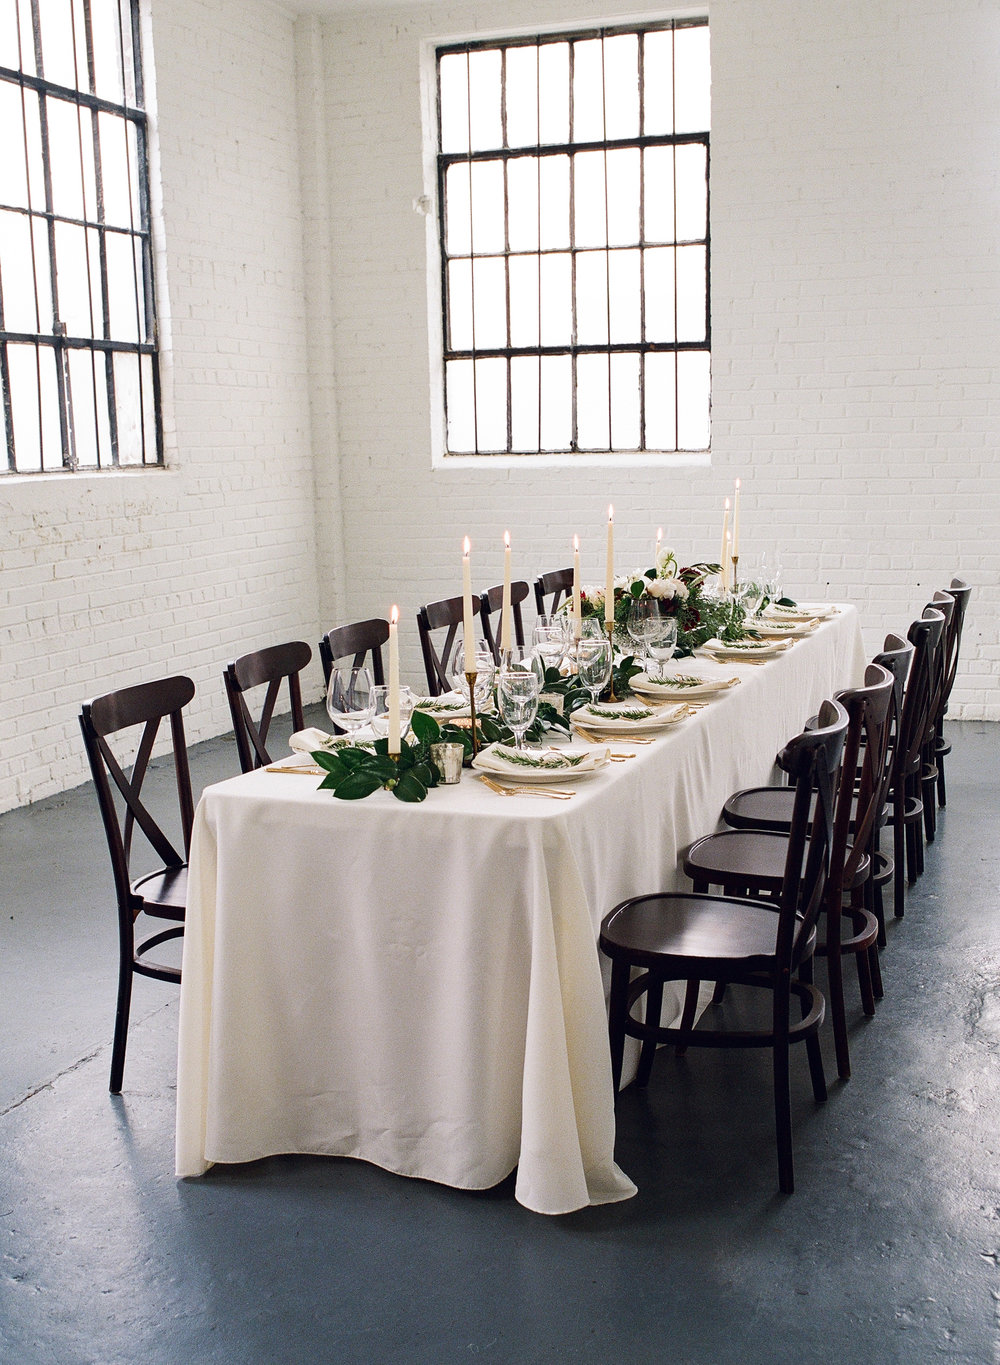 Modern Dinner Estate Table with a Green, White and Gold Theme